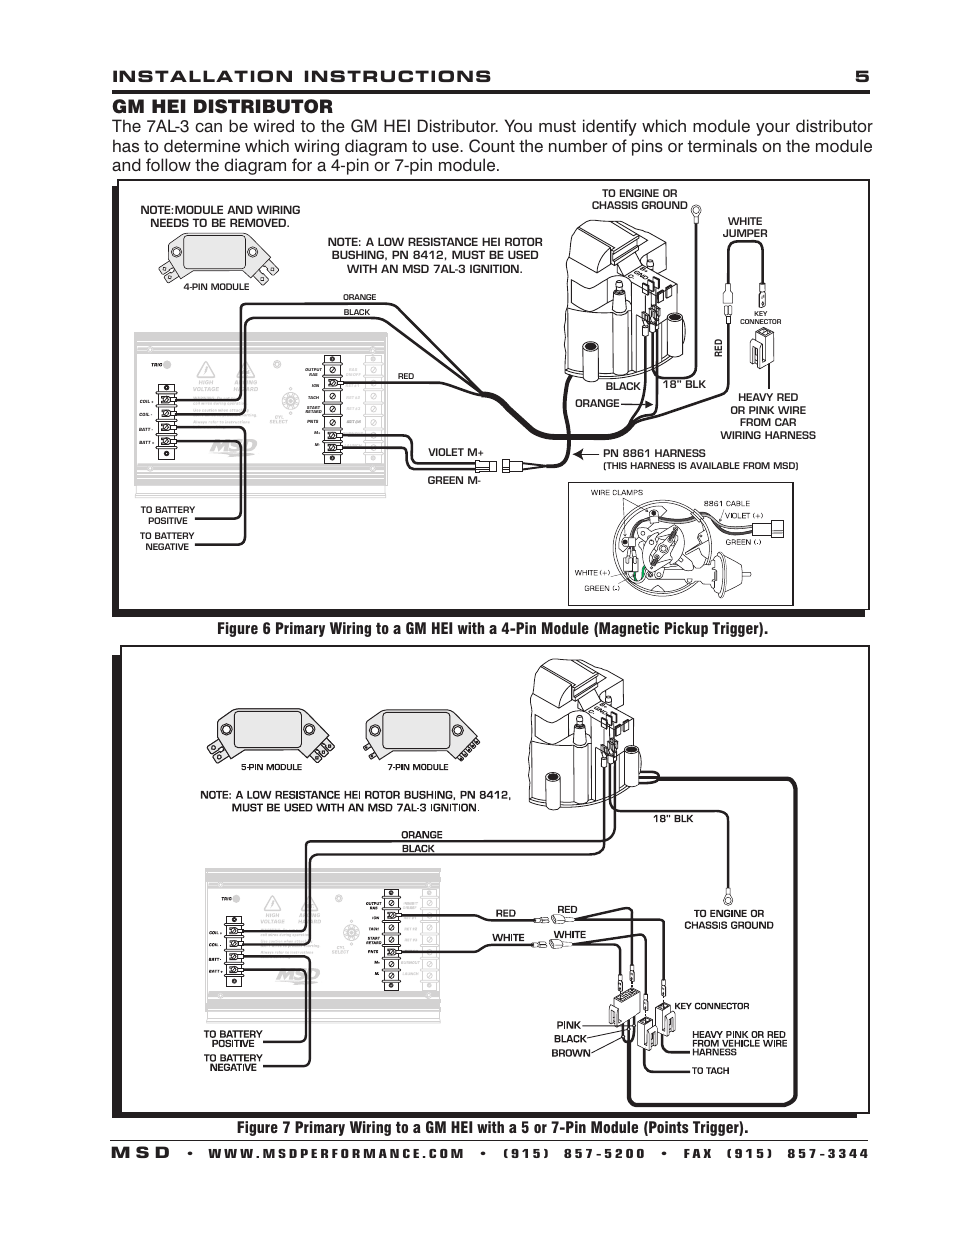 msd 7330 7al 3 ignition control installation page5?resize=665%2C861 msd 7al3 wiring diagram msd 7al 2 information, msd box wiring msd 7al 2 wiring diagram at bayanpartner.co